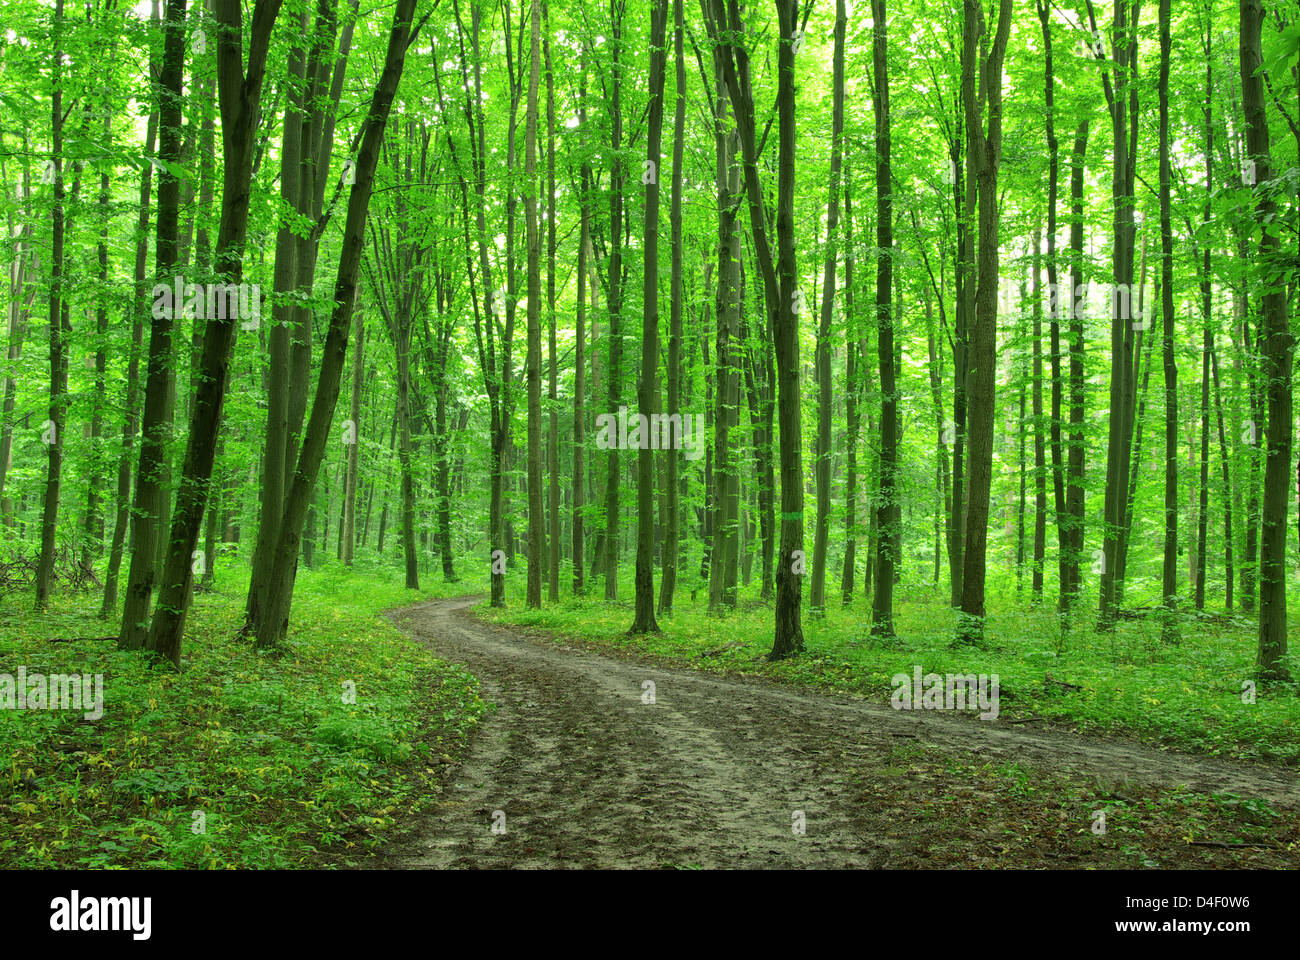 Bolefloor offers floorboards, cut using custom algorithms, that follow the natural warp and weft of trees. Forest Trees Nature Green Wood Backgrounds Stock Photo Alamy